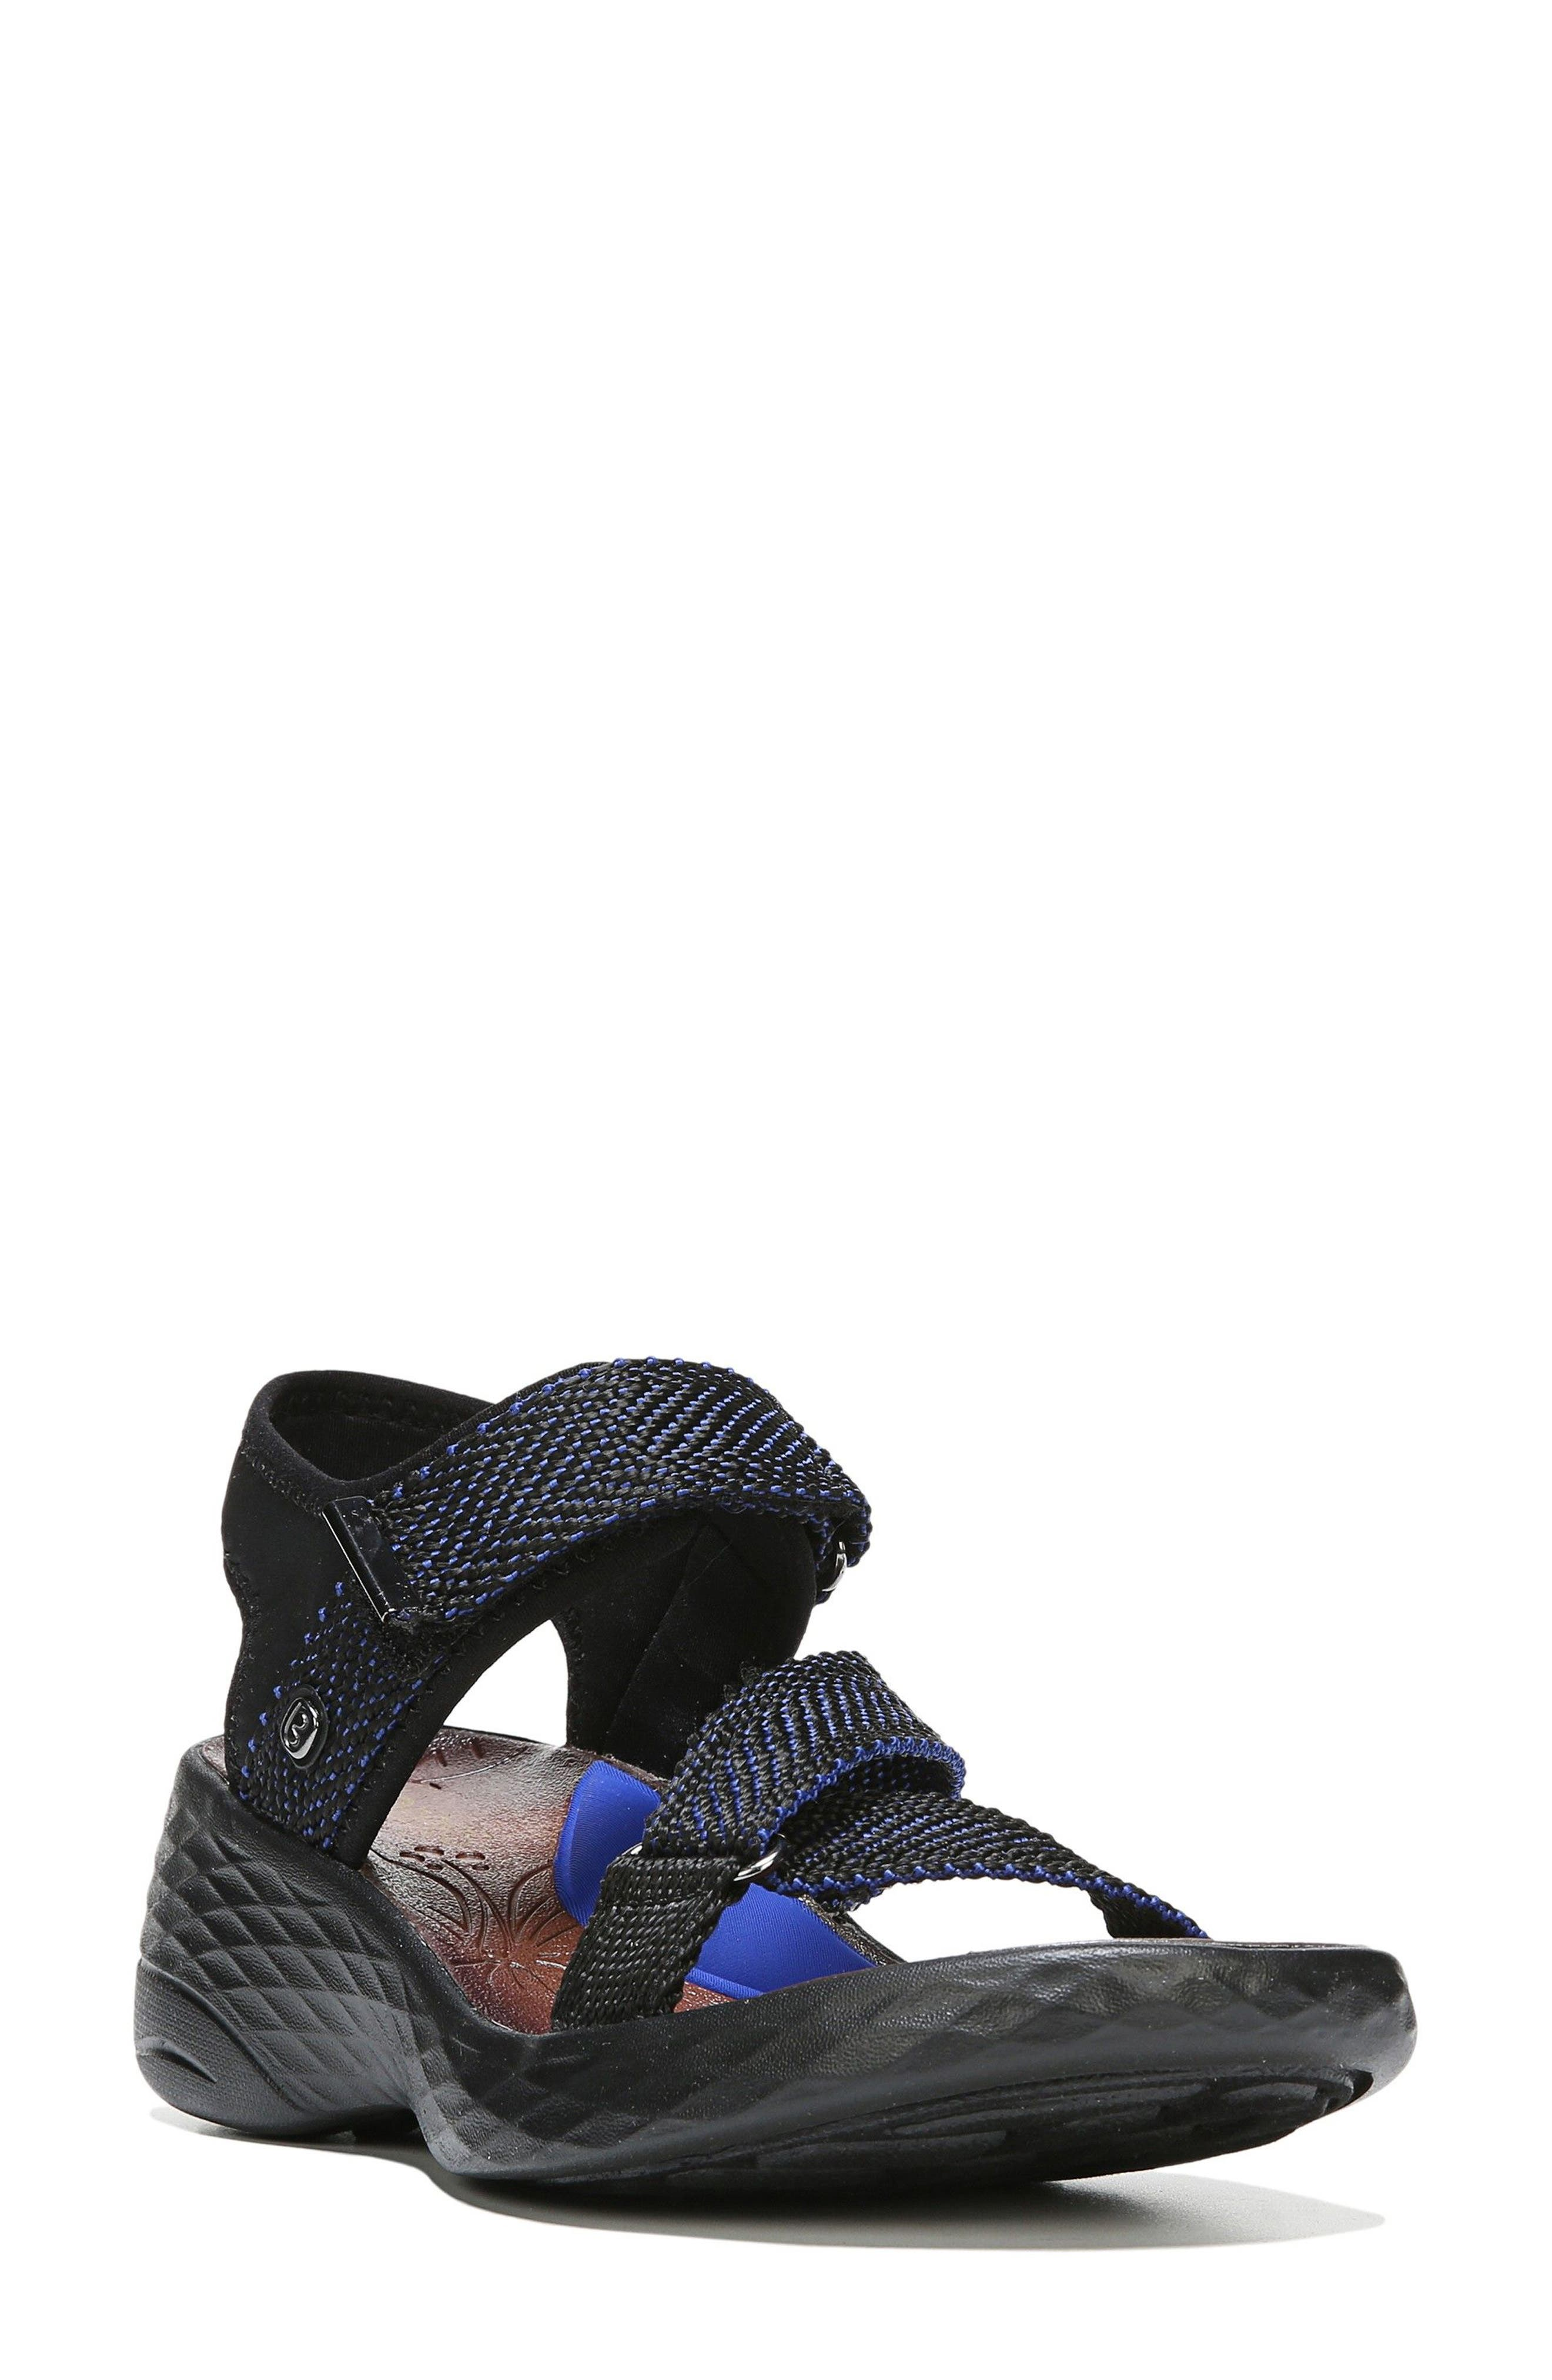 Jive Sandal,                         Main,                         color, BLUE WEBBING FABRIC